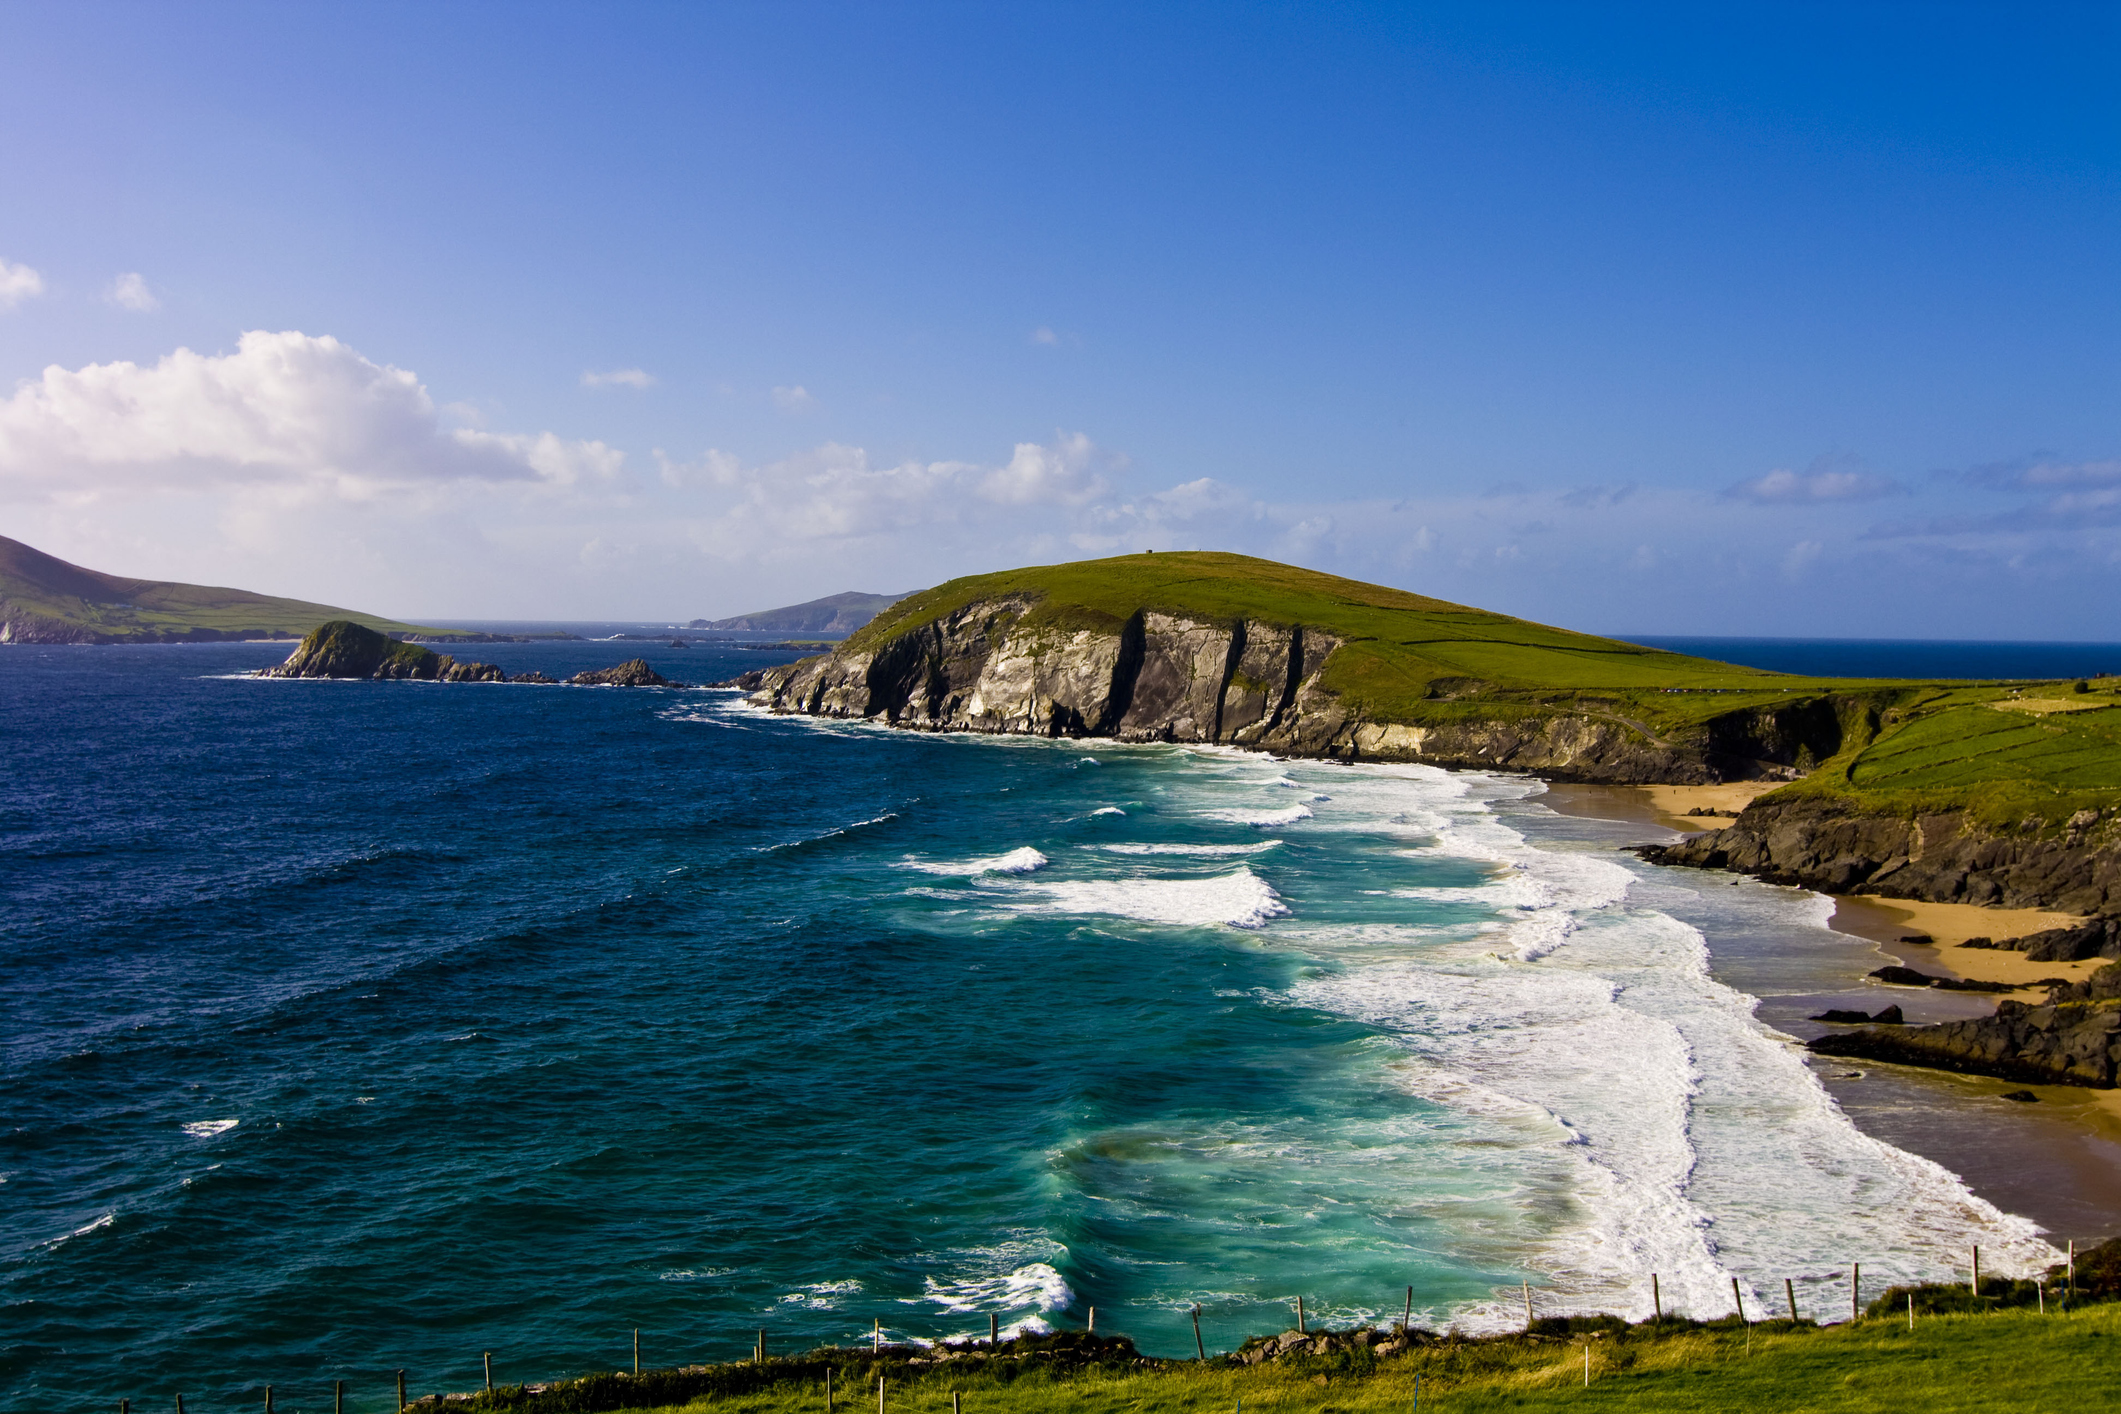 Dunmore Head in Dingle Peninsula (County Kerry,Ireland) Getty Images